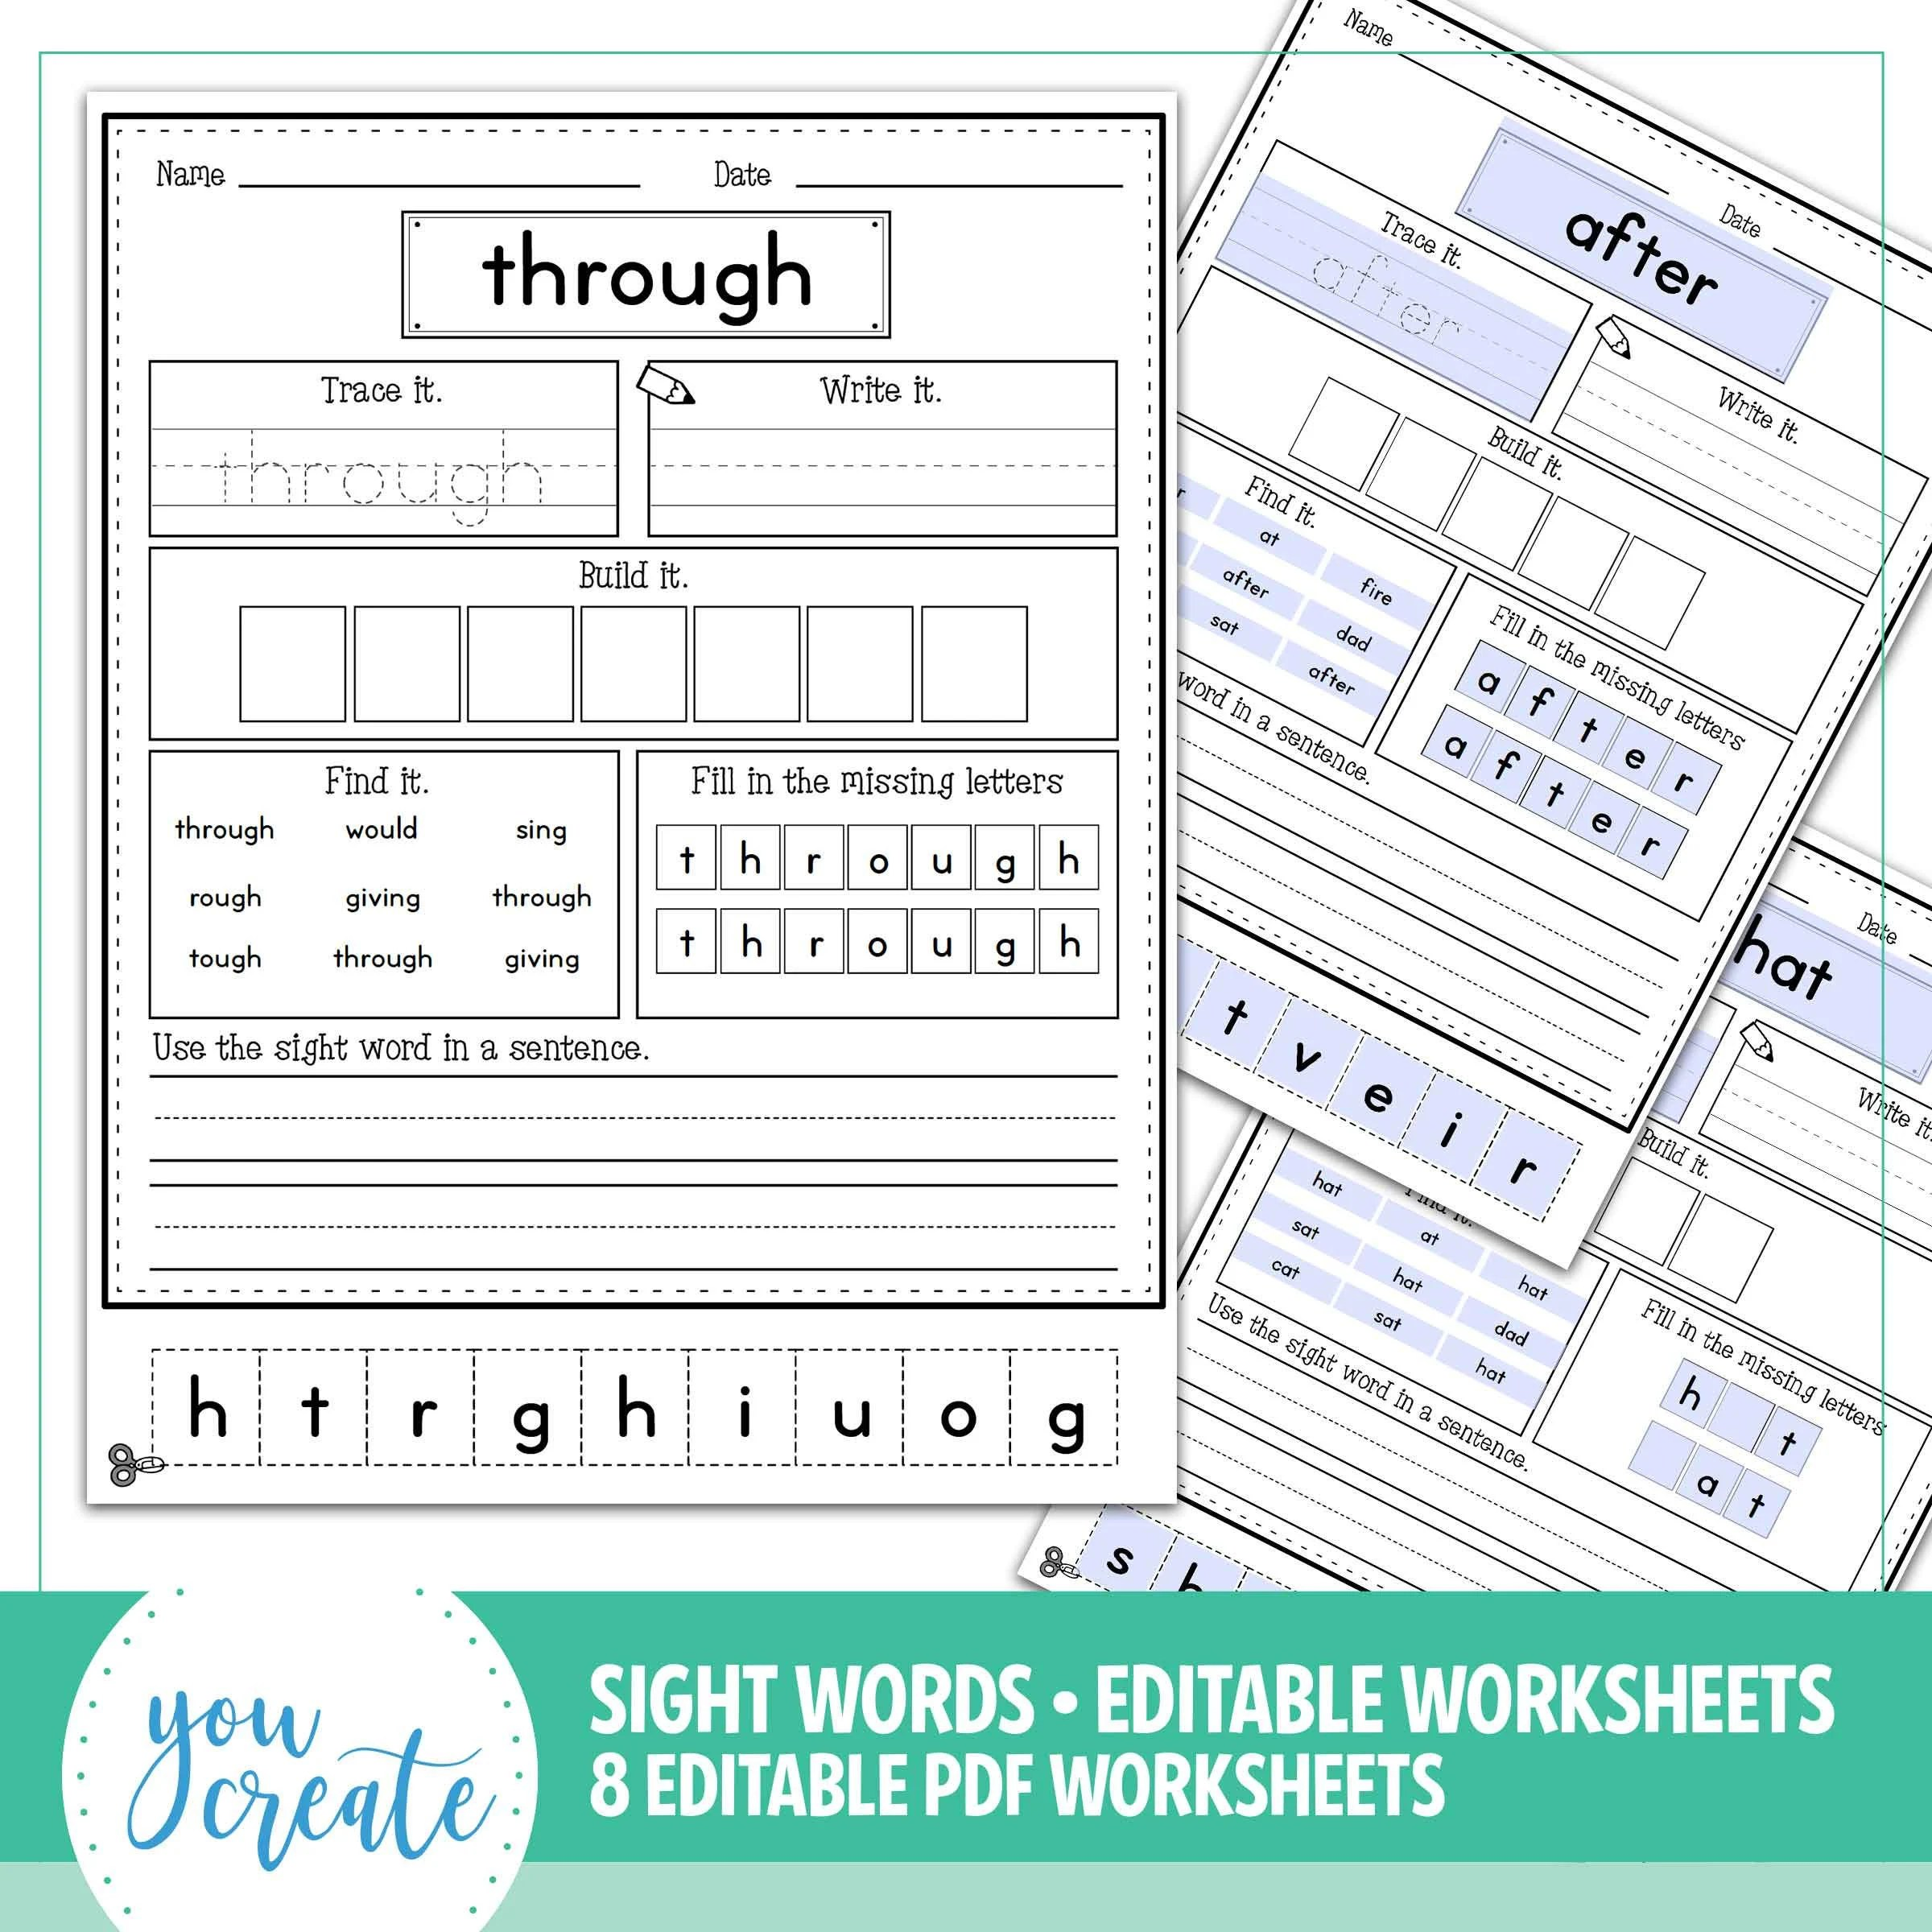 Sightword Worksheets Create Your Own Editable 2 Thru 9